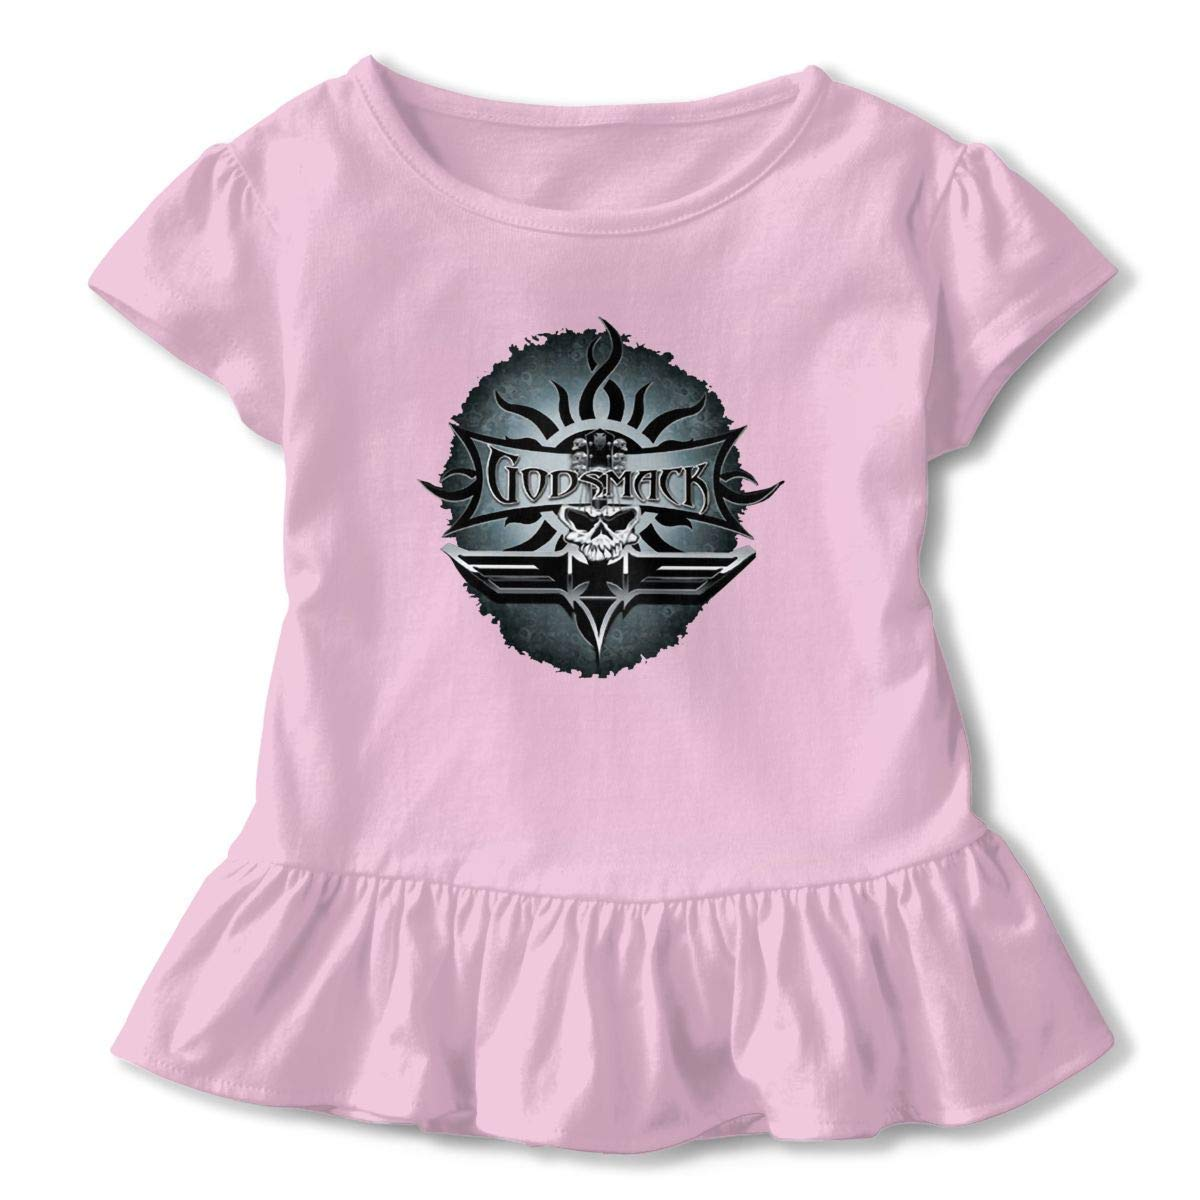 Kid T Shirt Godsmack Smack Art 3D Tee Baseball Ruffle Short Sleeve Cotton Shirts Top for Girls Kids